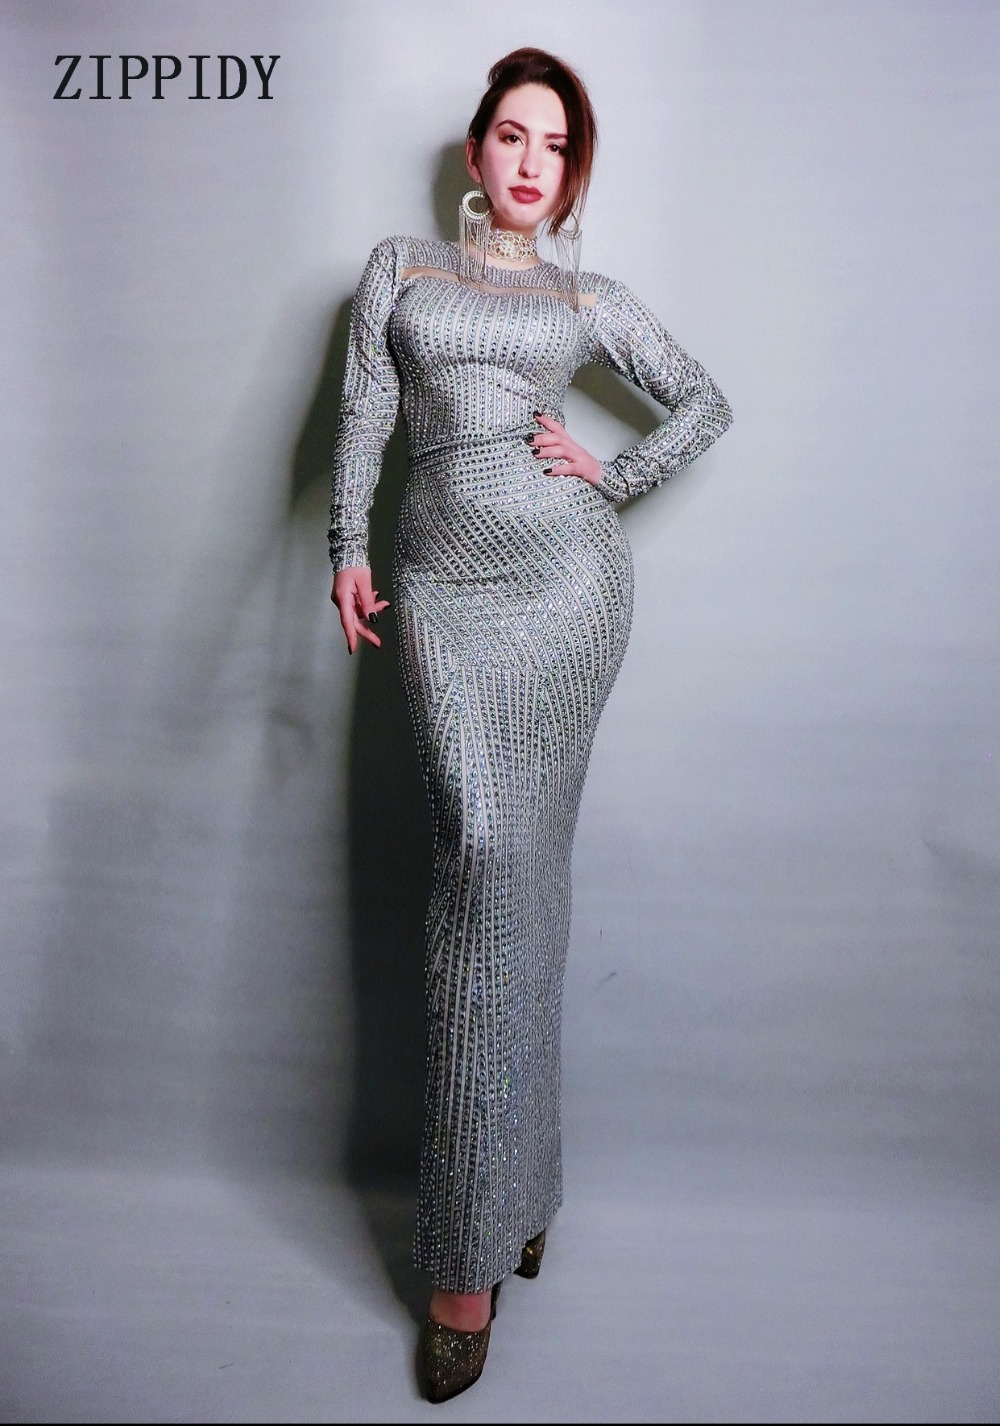 Full Rhinestone Long Sleeves Sparkly Long Dress Sexy Stage Outfit Birthday Party Celebrate Women Dance Dress Evening Outfit